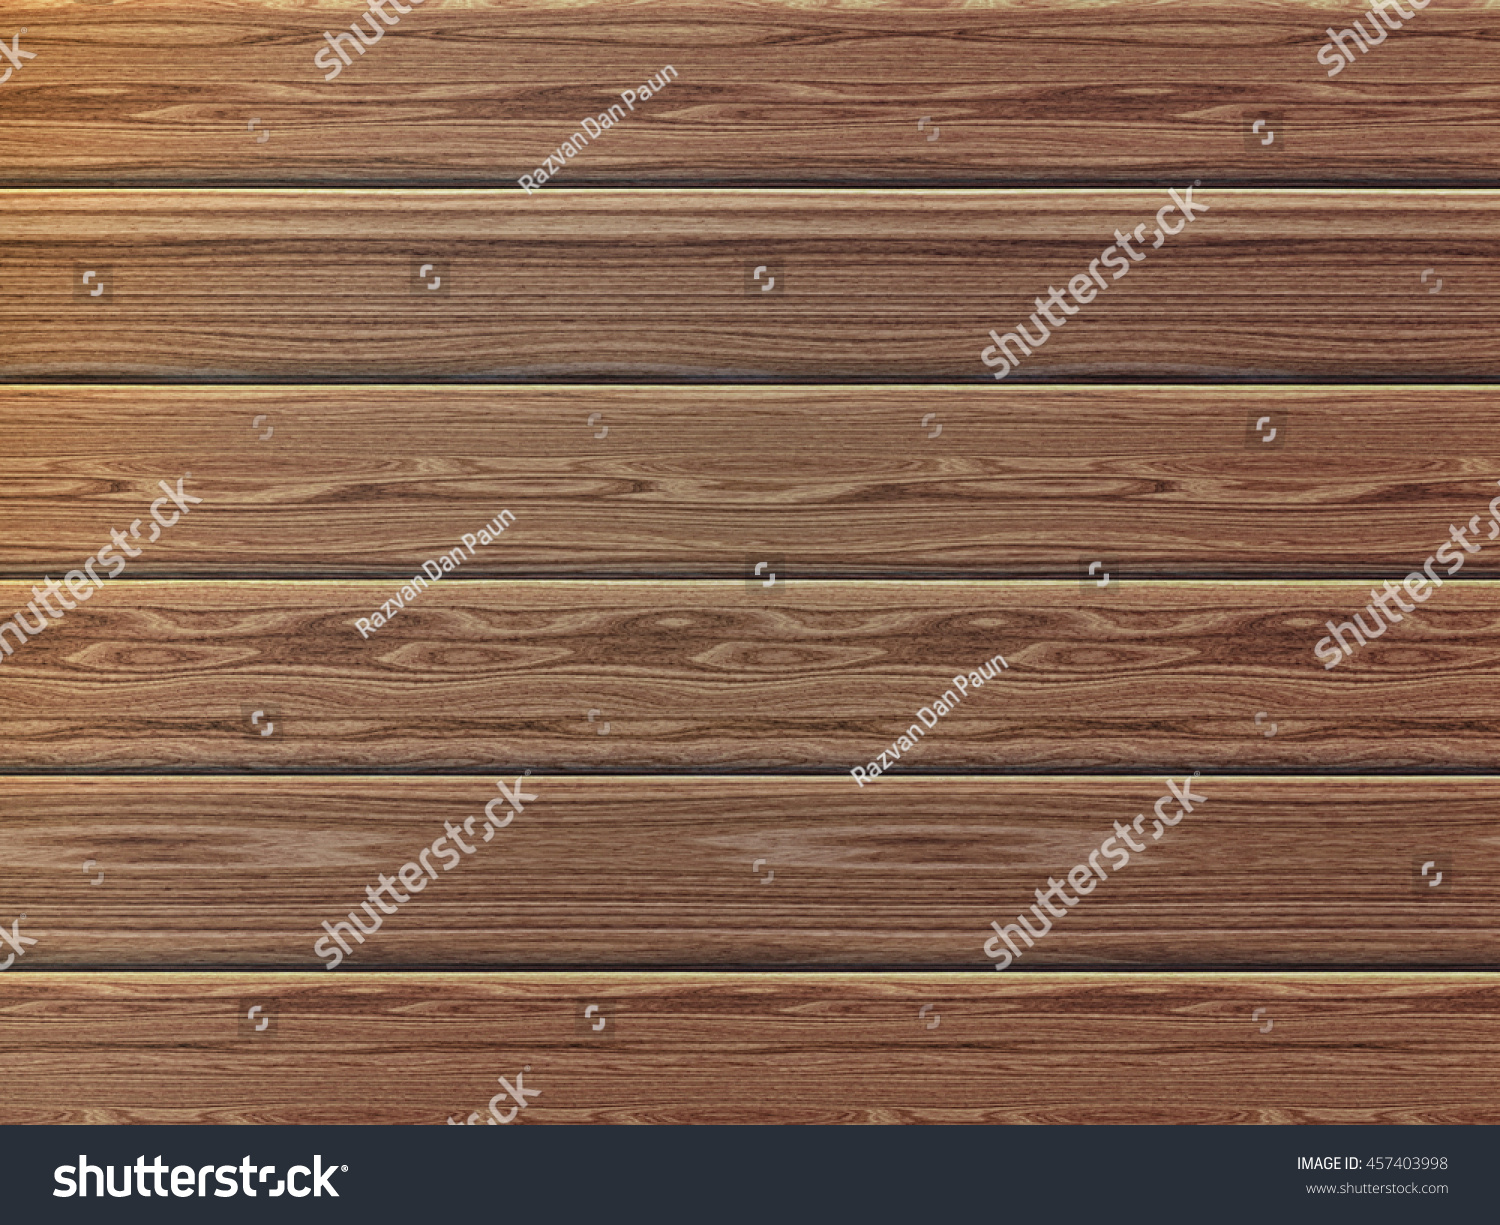 Merveilleux Wooden Texture / Background. Wood Table. Top View. 3D Render